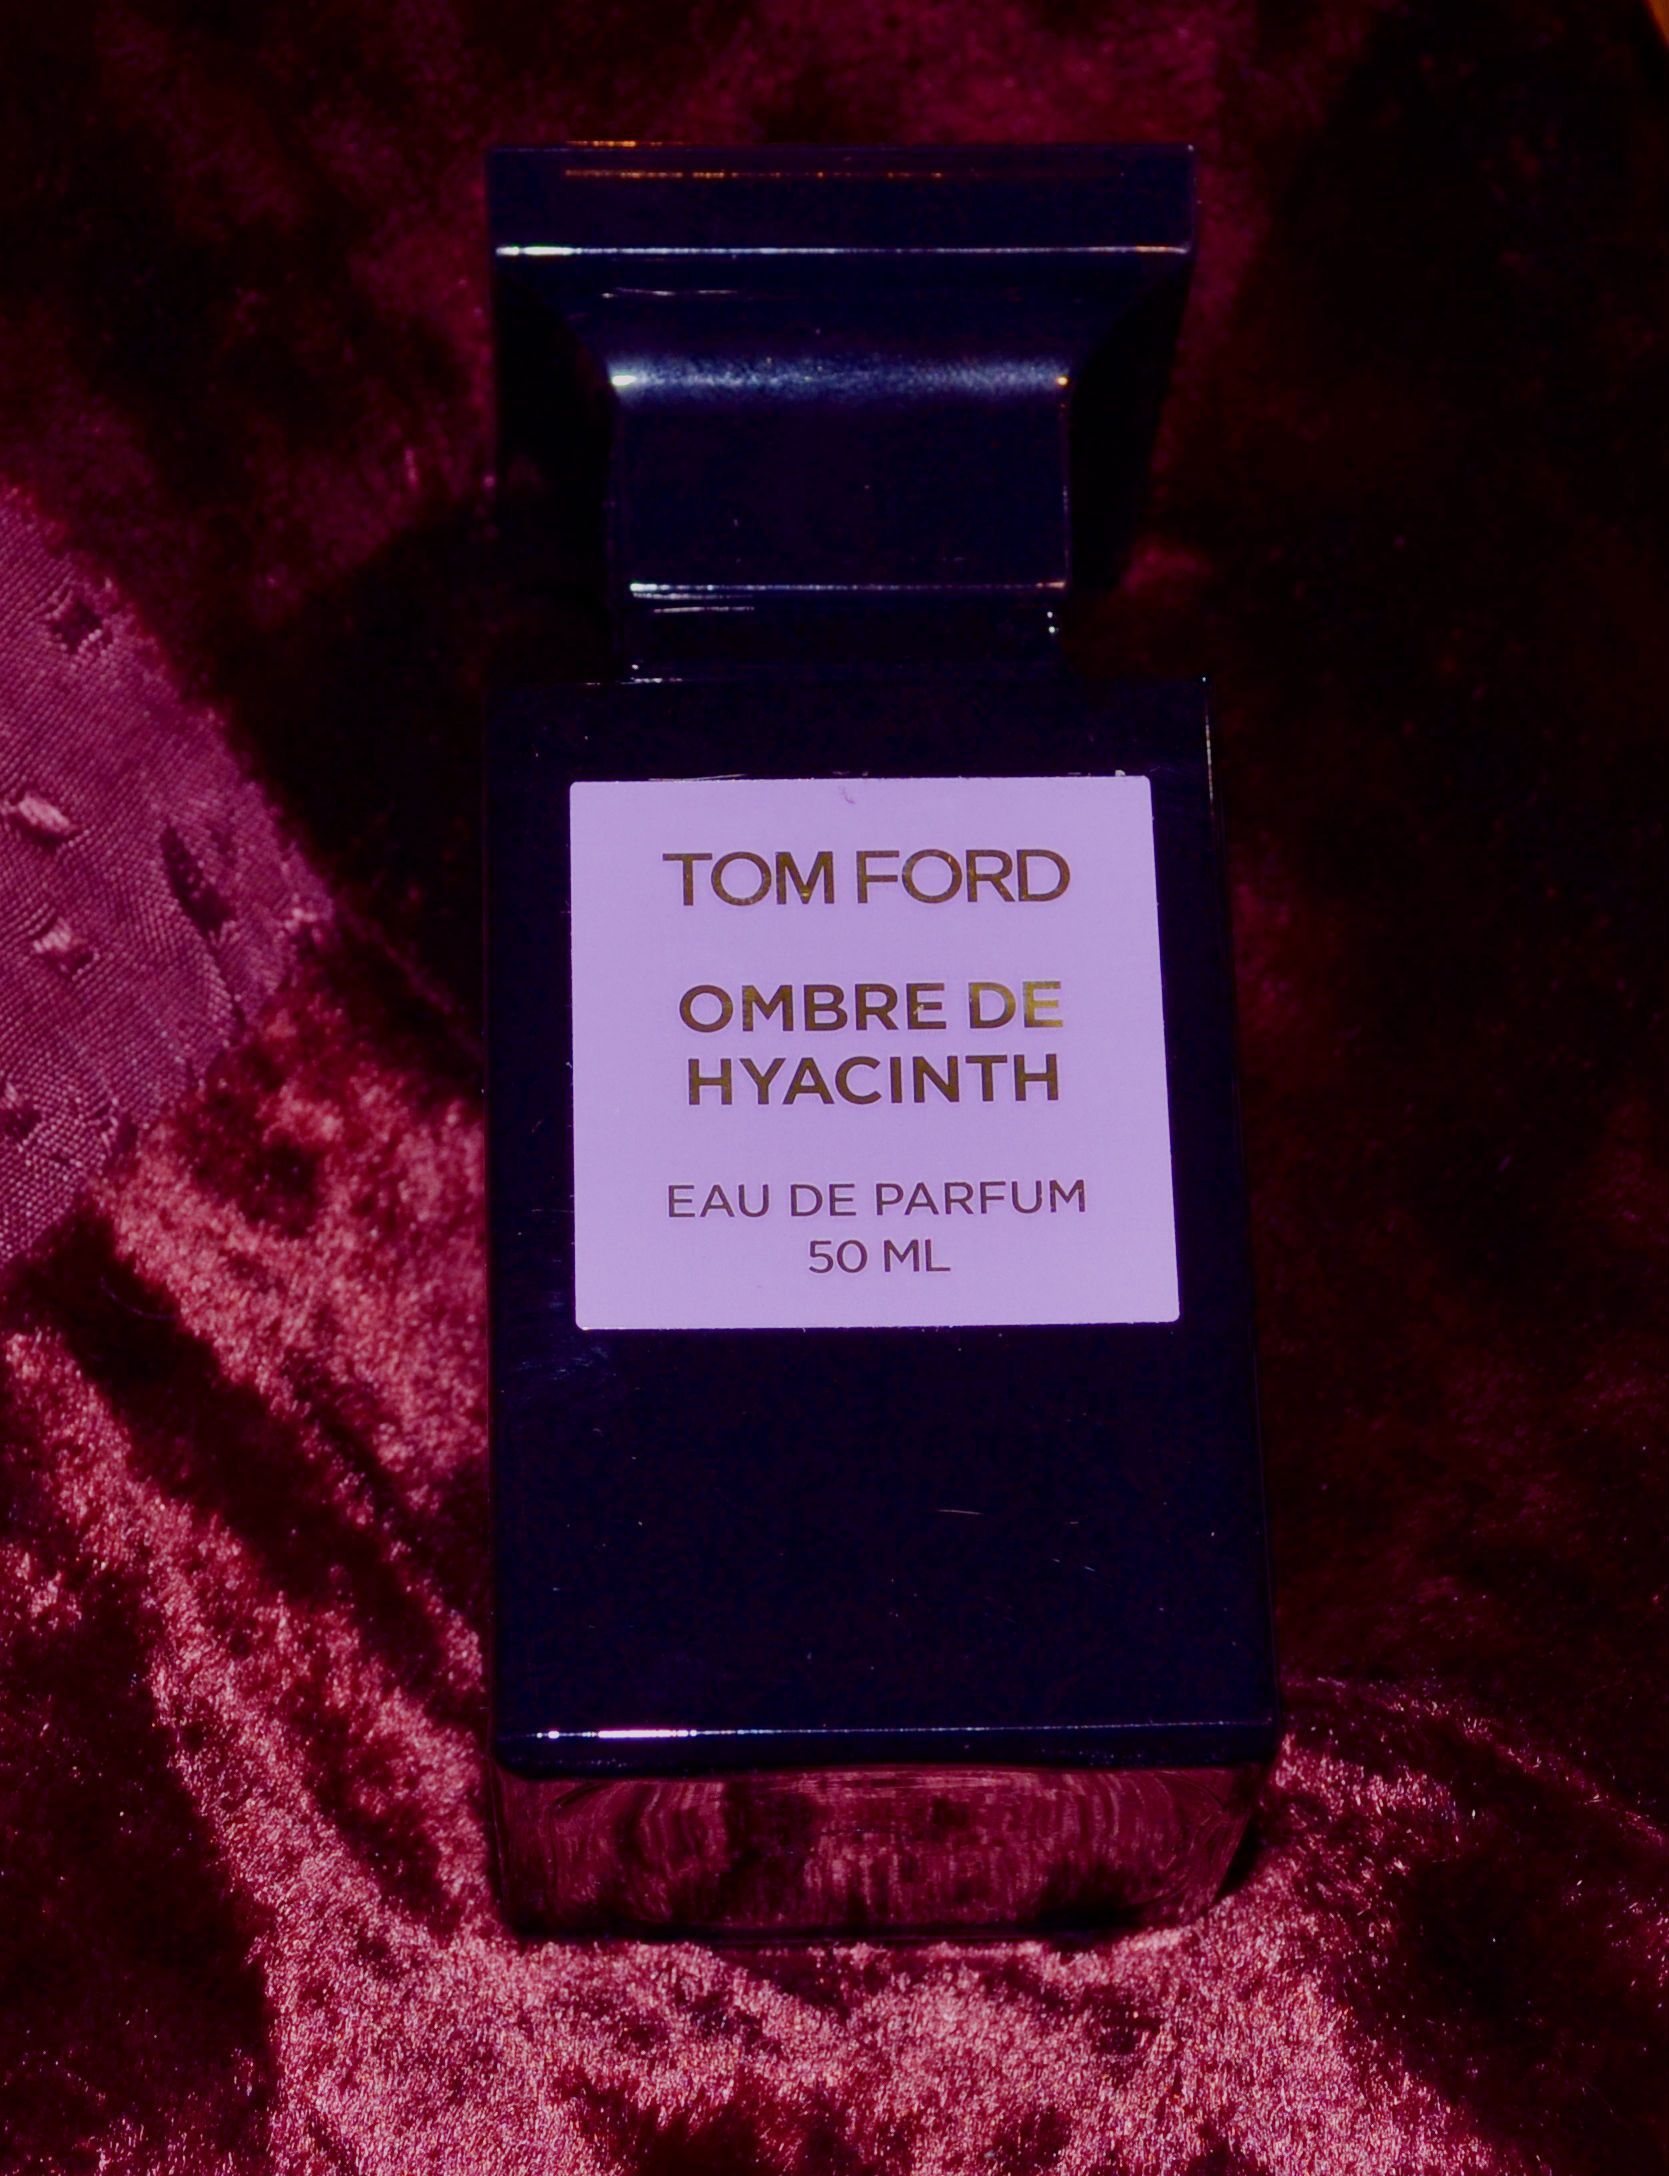 Tom Ford Ombre De Hyacinth Scents Perfume Collection Perfume